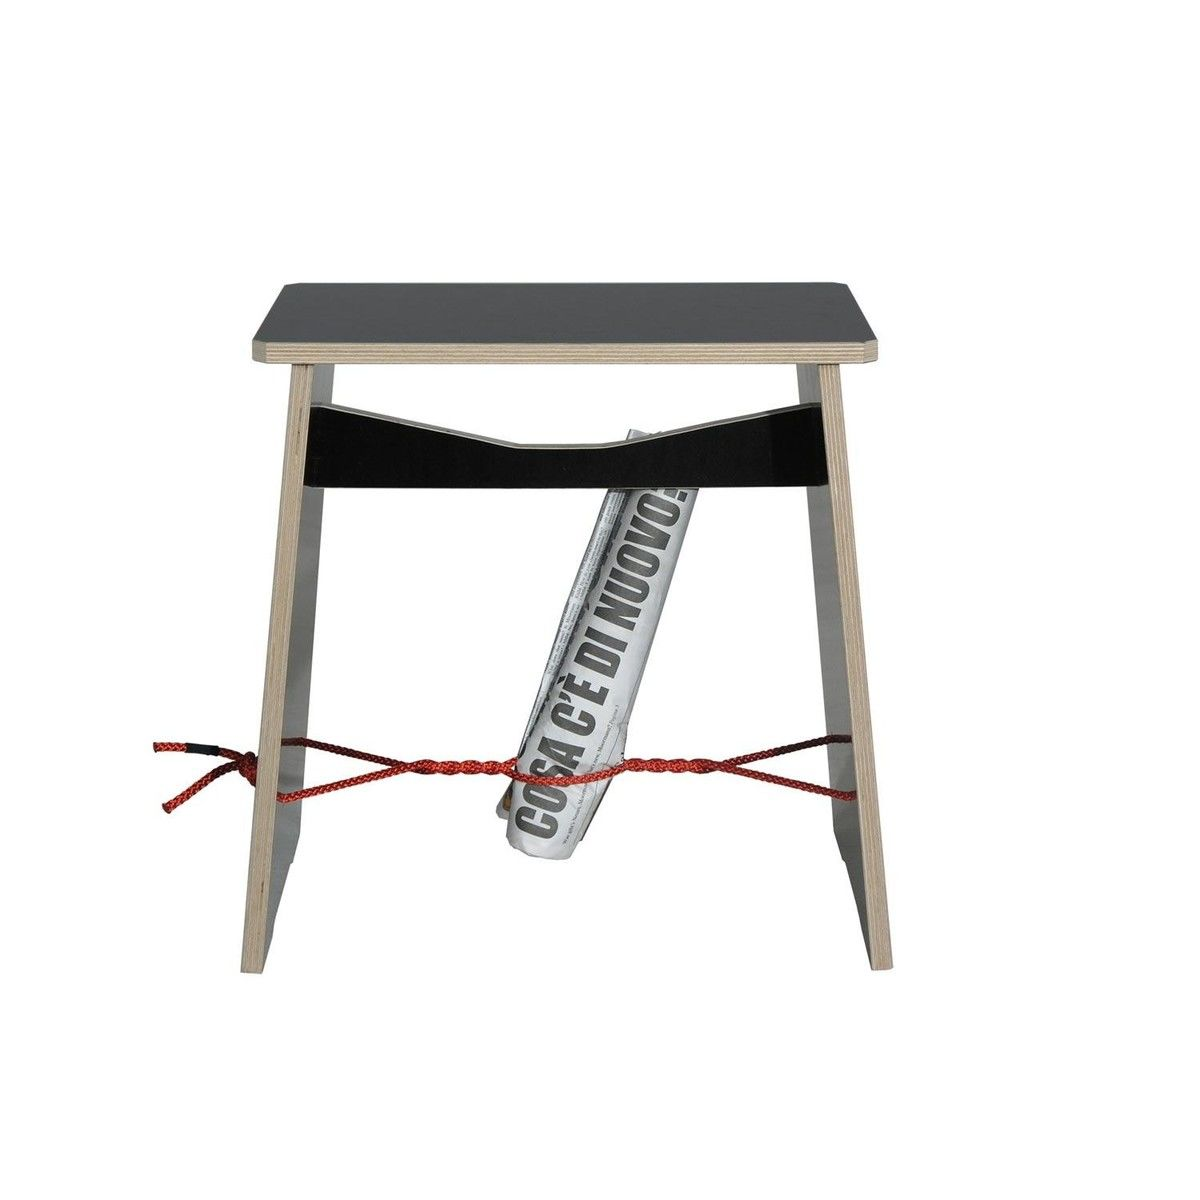 Moormann Design Moormann Strammer Max Stool Moormann Ambientedirect